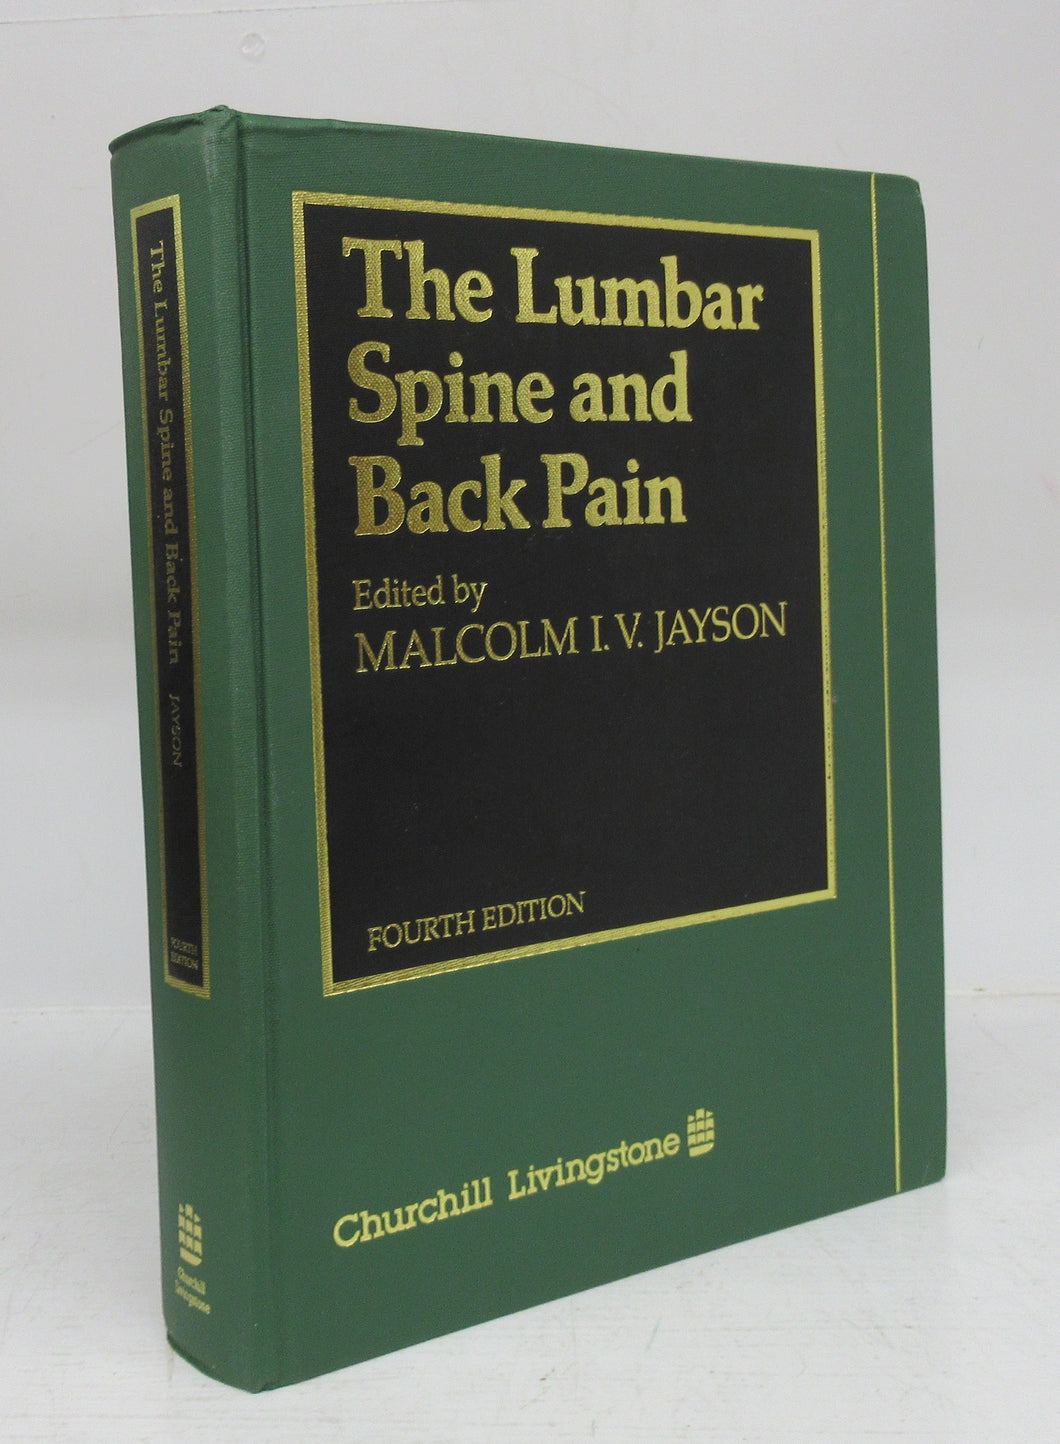 The Lumbar Spine and Back Pain